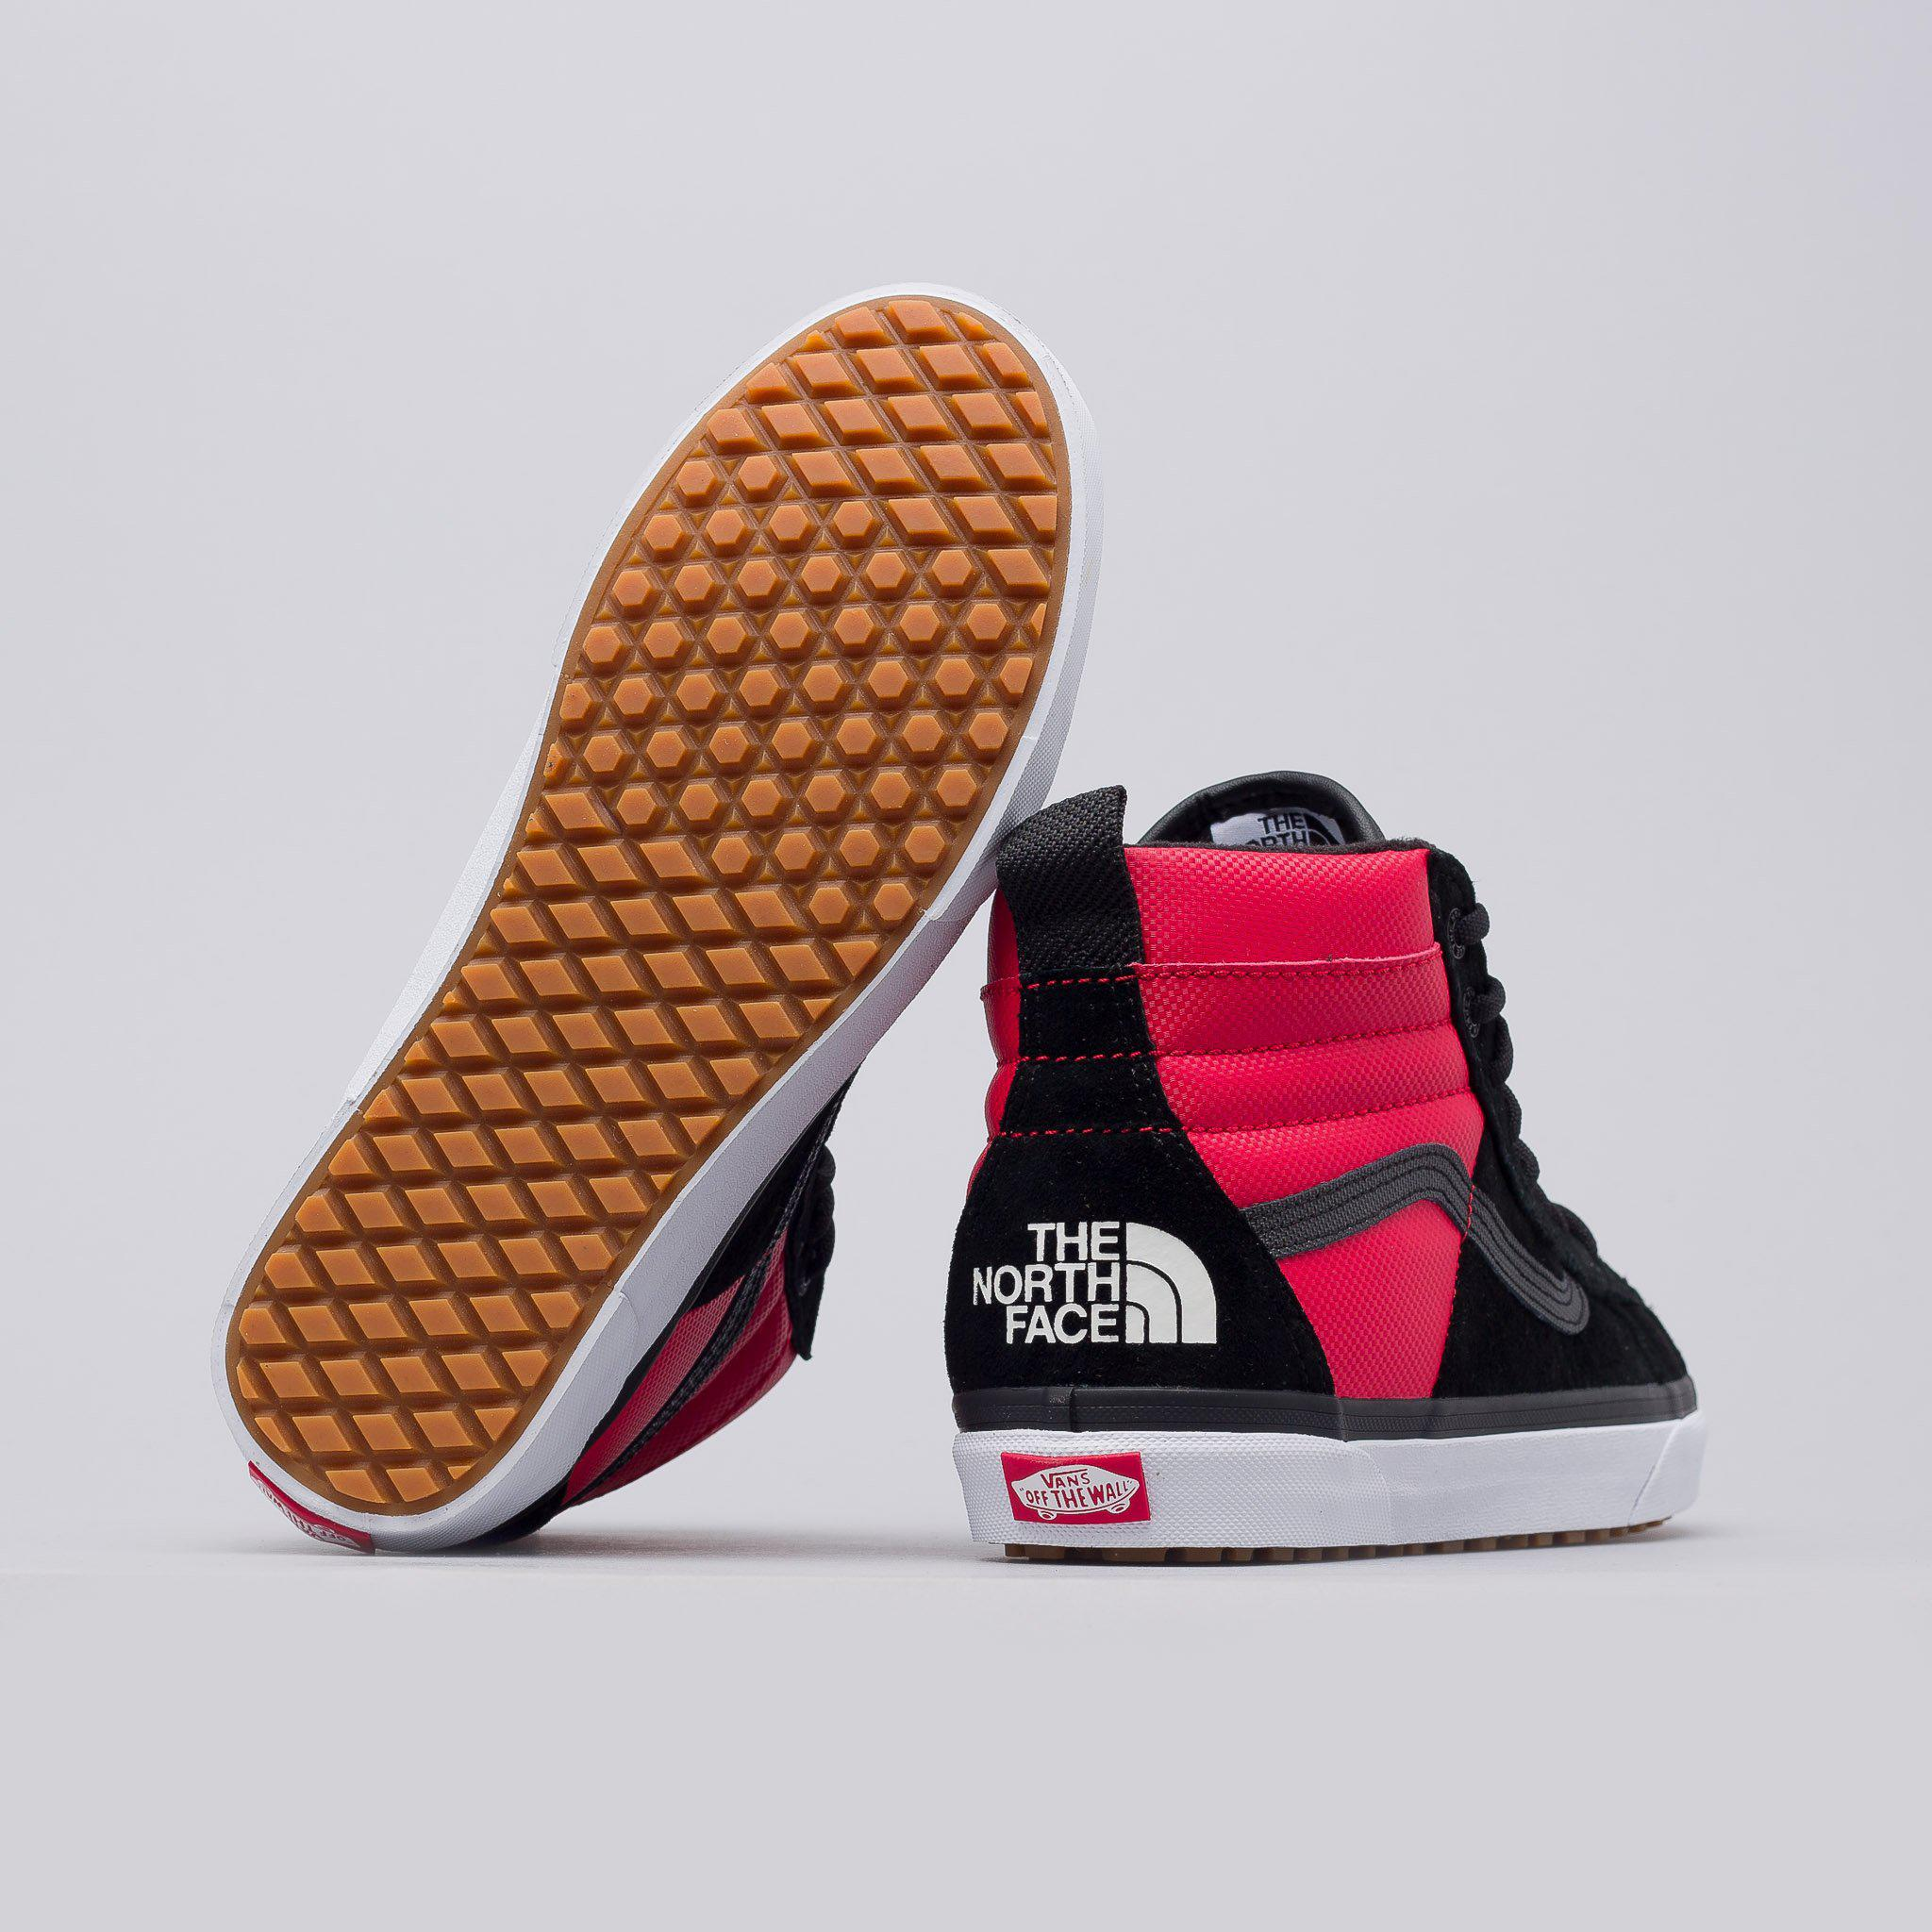 6129c61952 Lyst - Vans X The North Face Sk8-hi 46 Mte Dx In Red black in Red ...